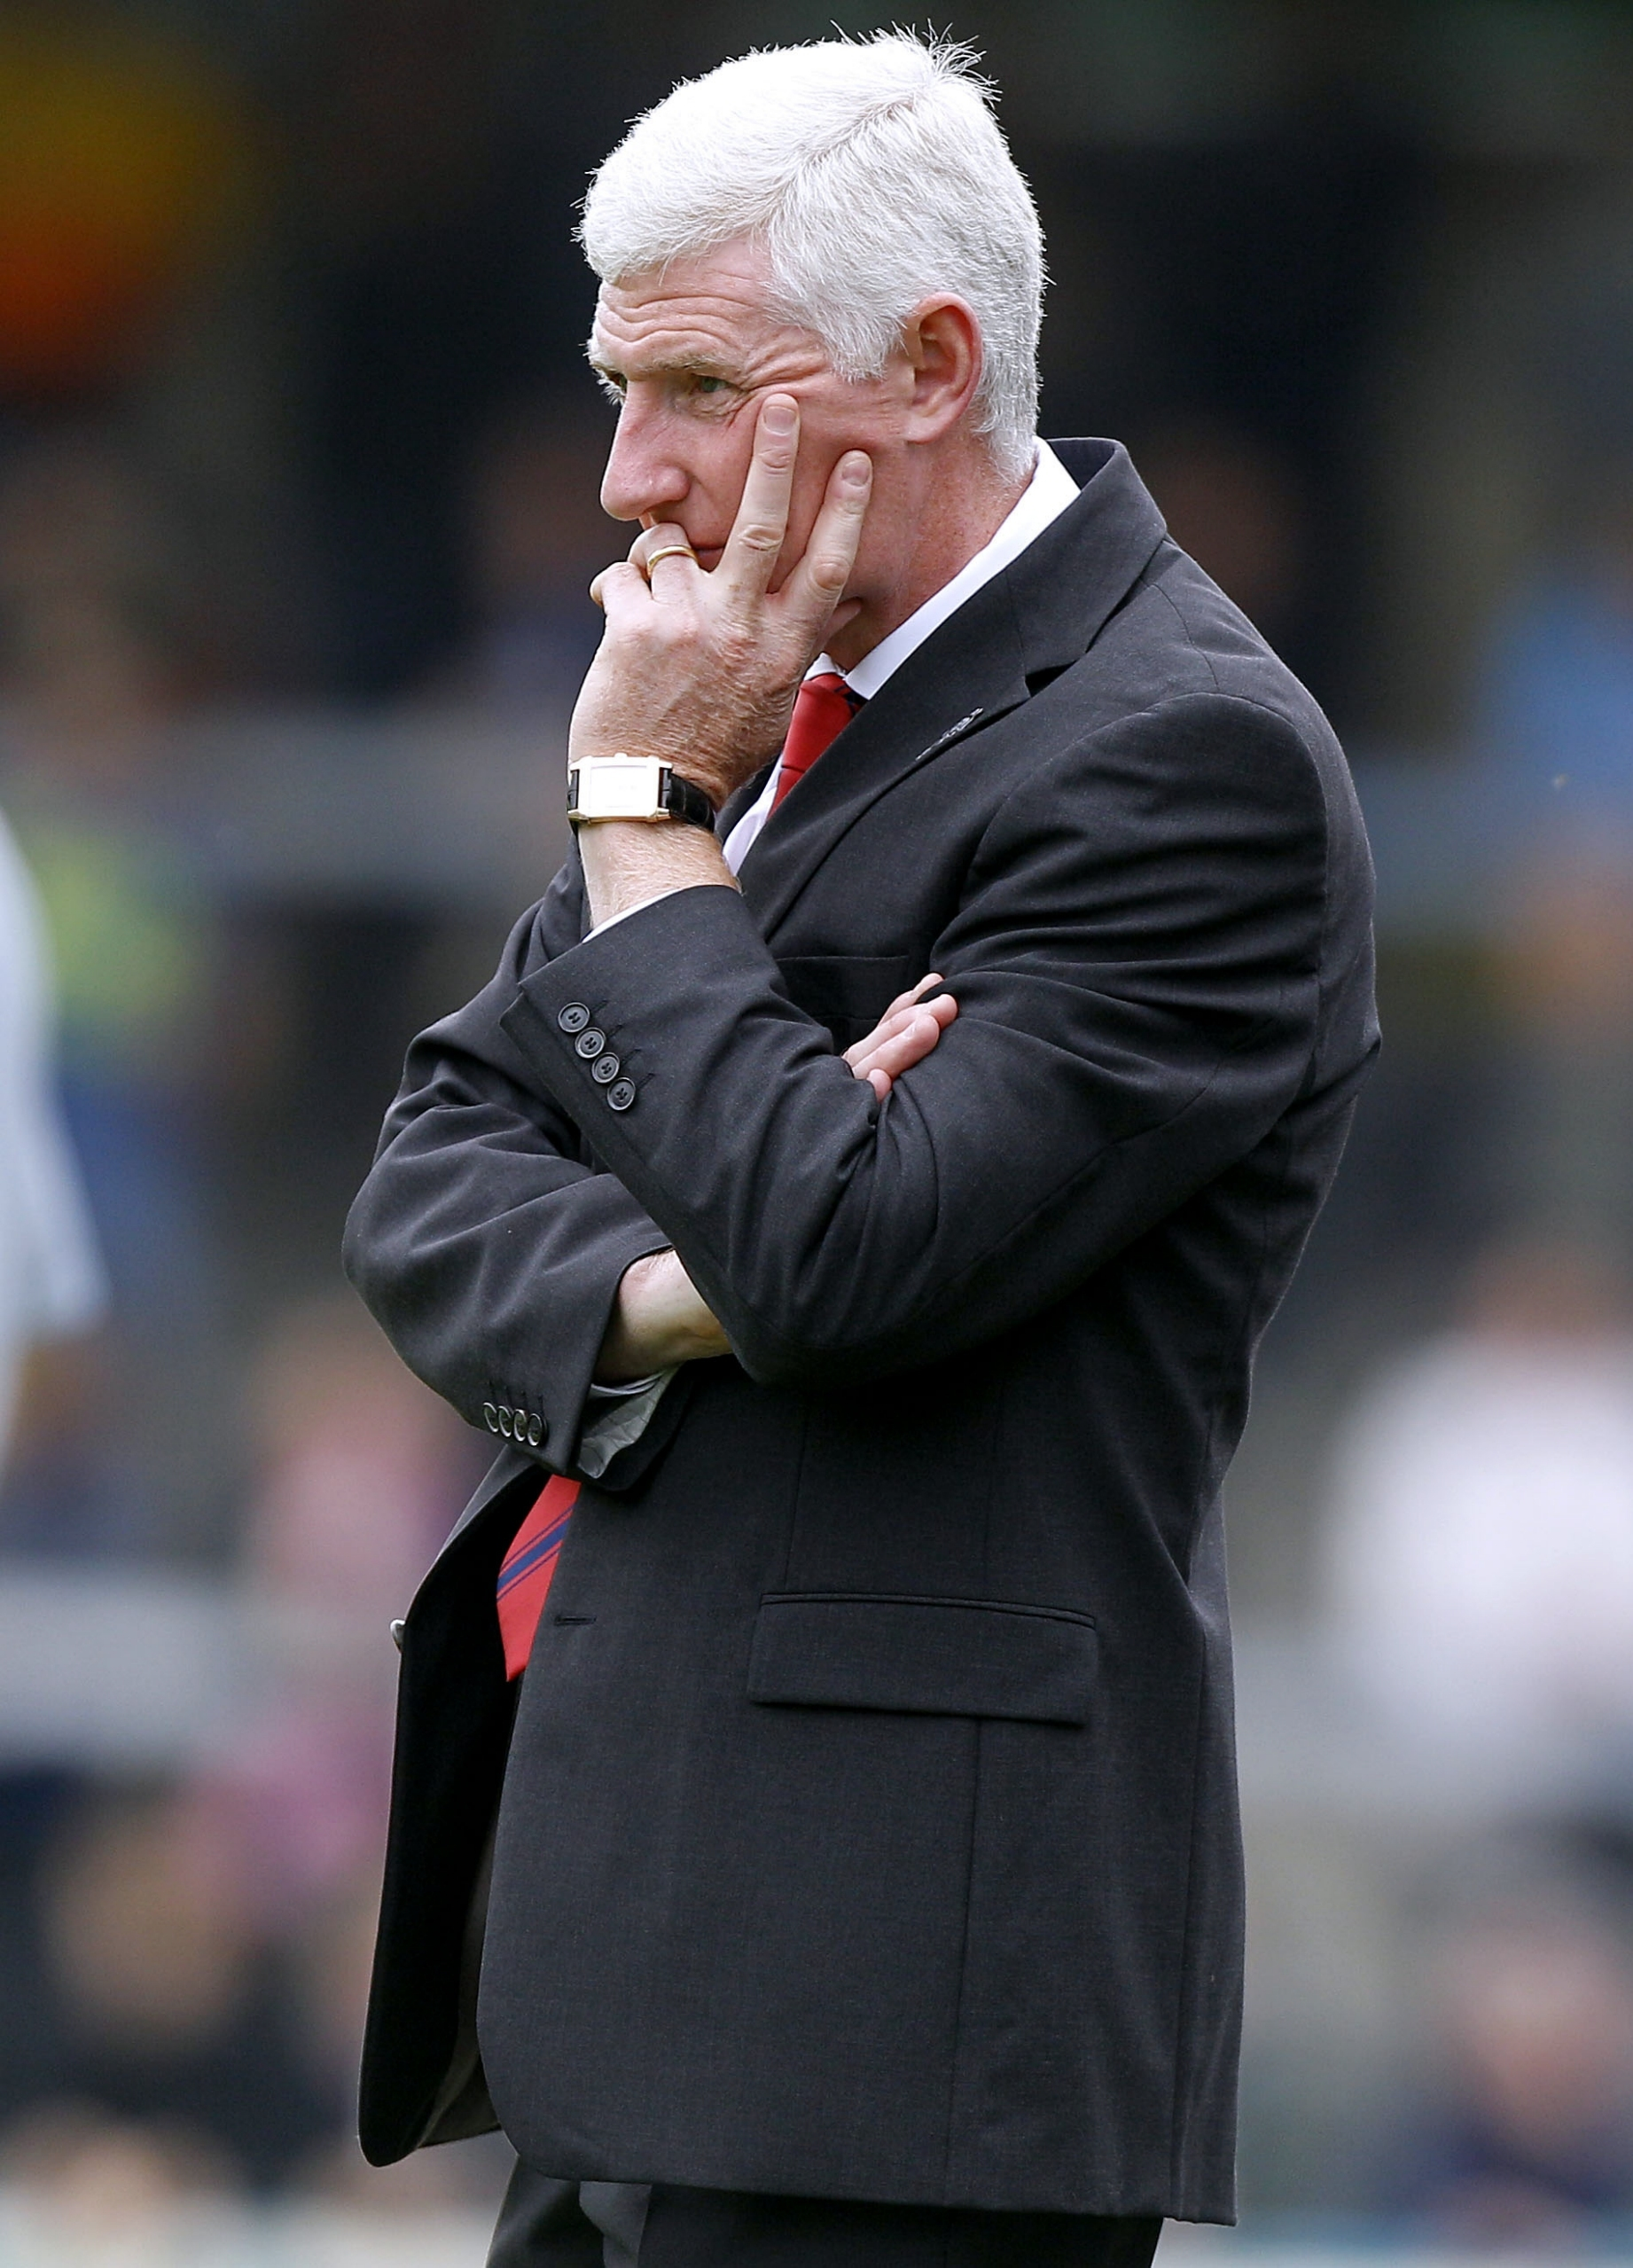 York City boss Nigel Worthington isn't expecting to do any transfer business